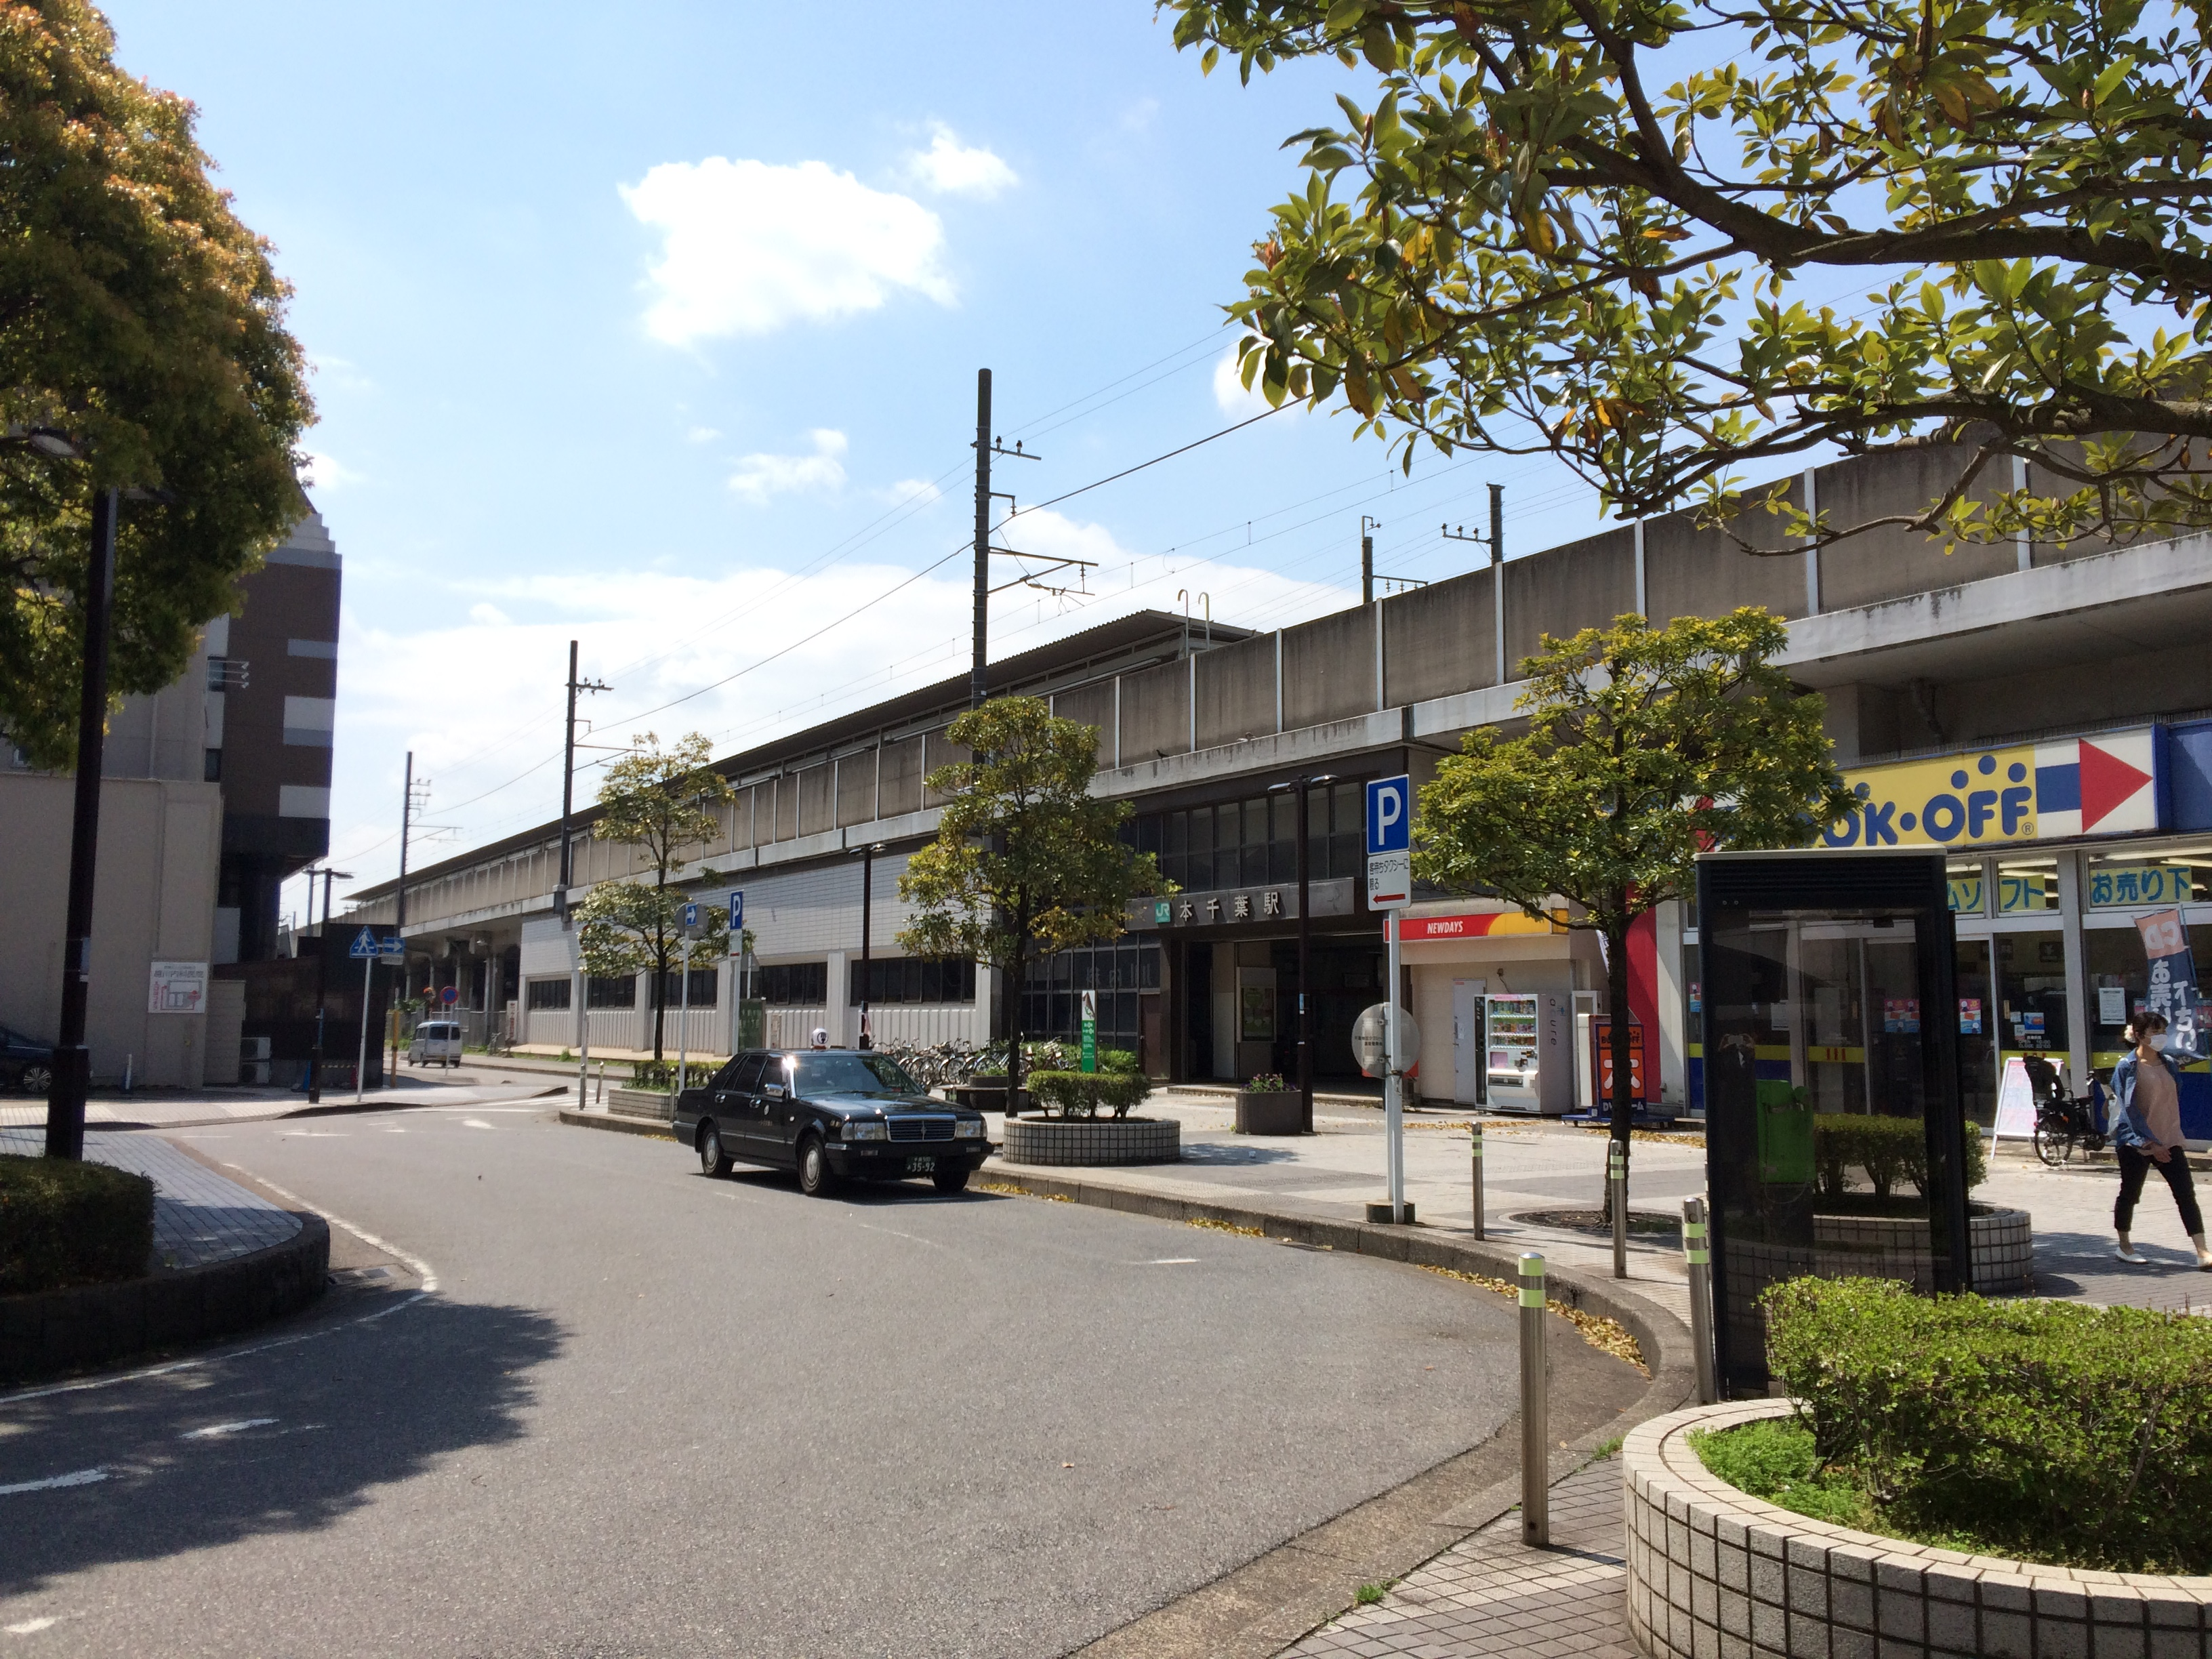 https://upload.wikimedia.org/wikipedia/commons/b/b3/Hon-Chiba_Station_20150415.jpg